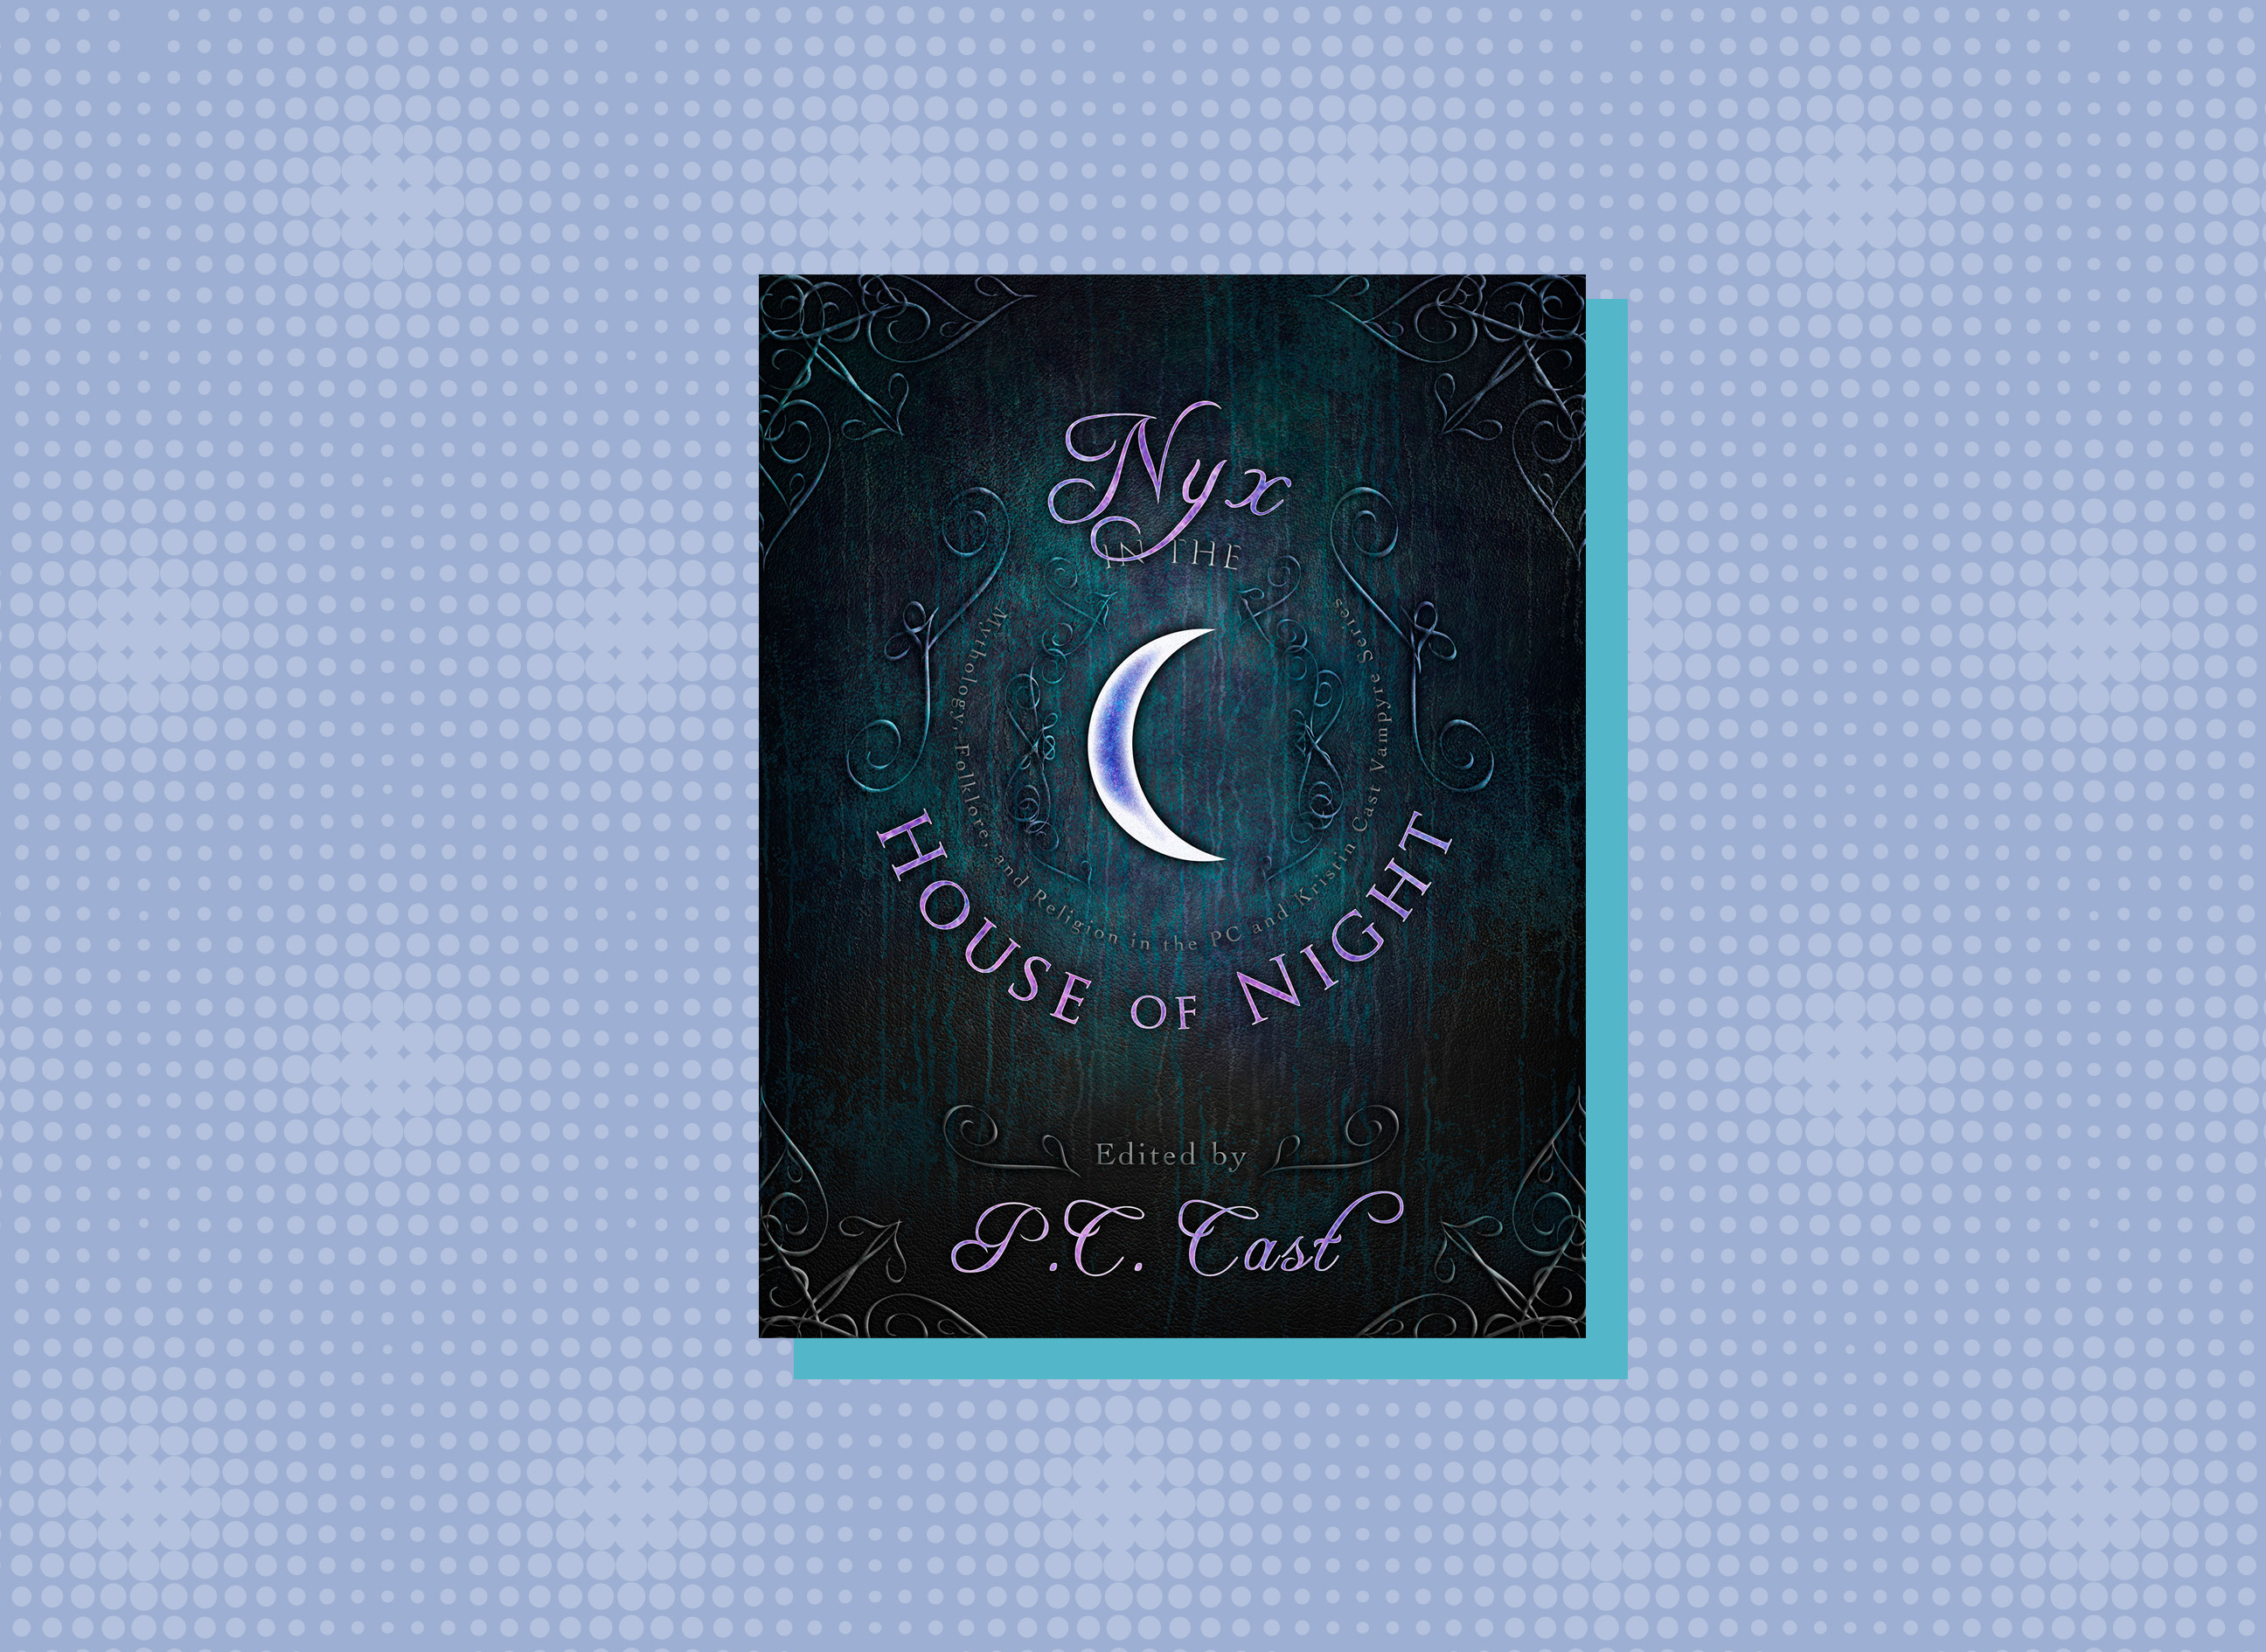 Nyx in the House of Night c